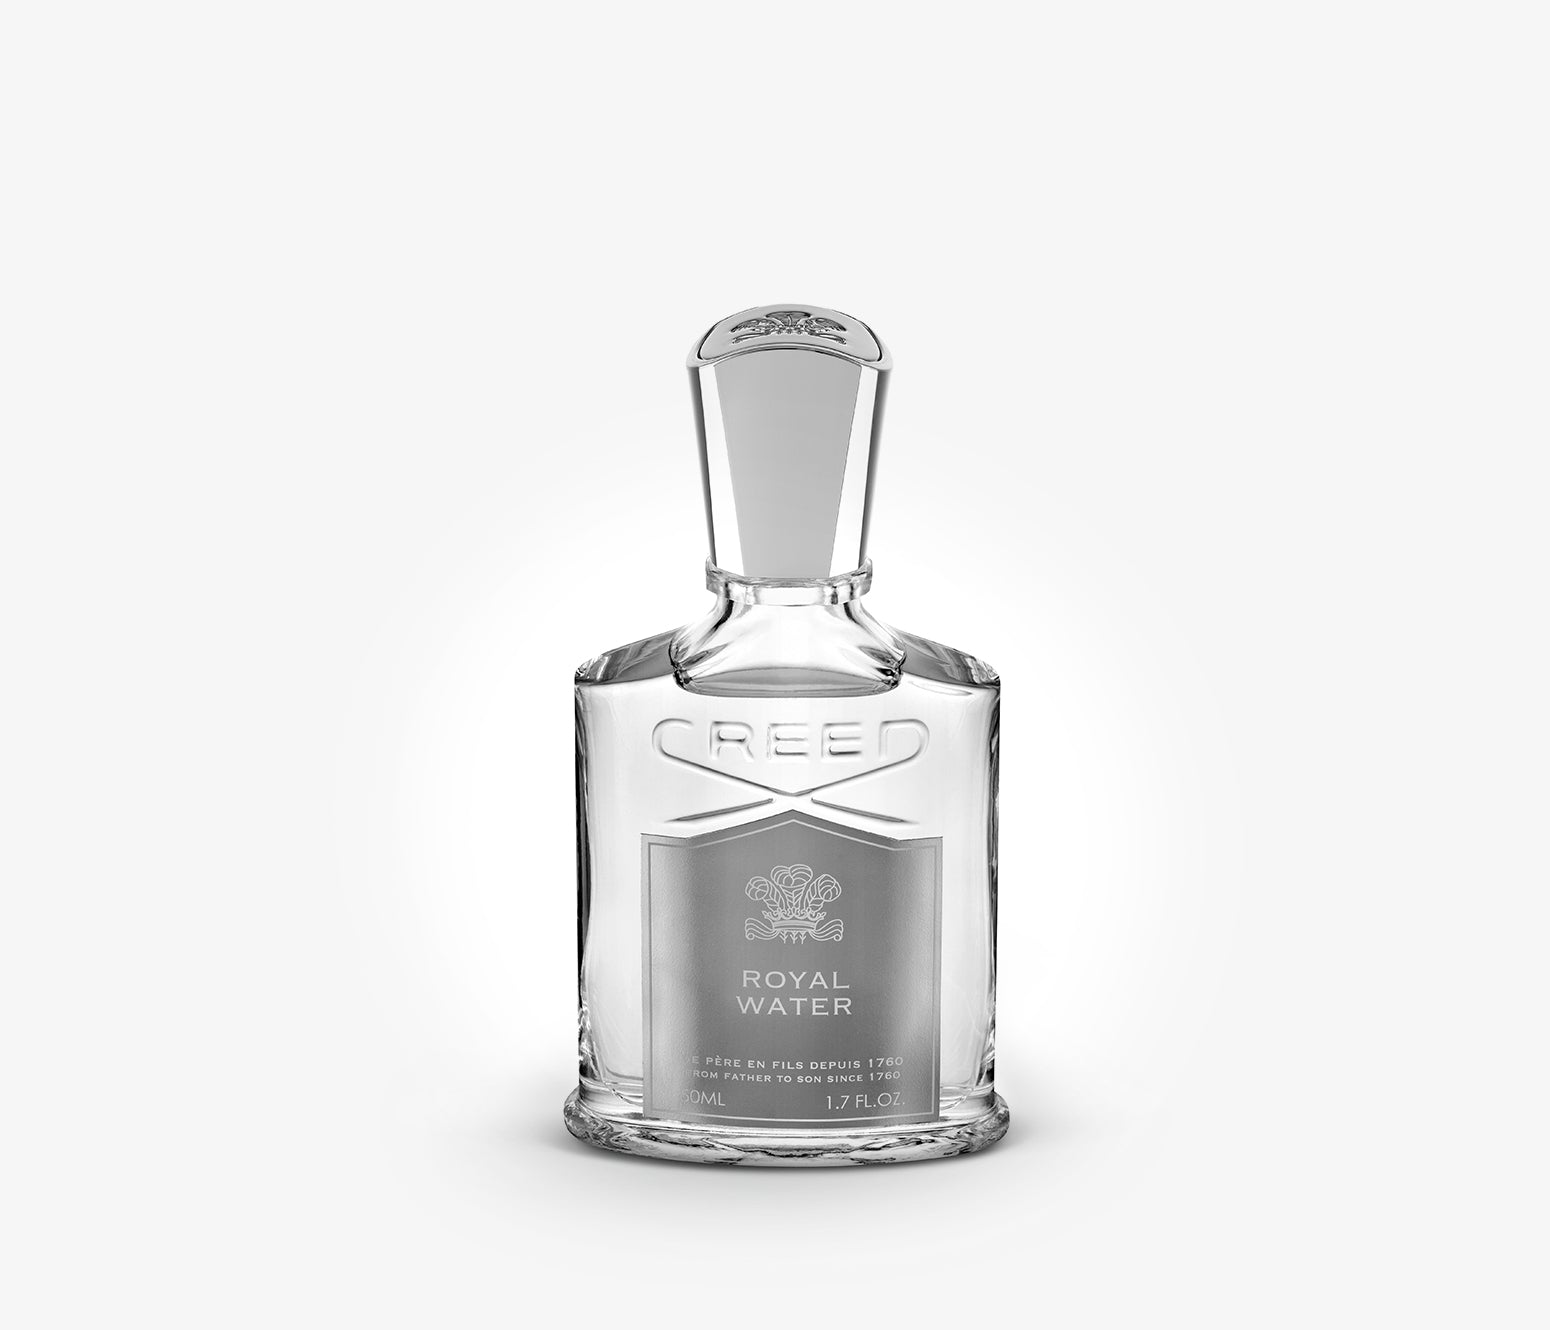 Creed - Royal Water - 50ml - 10001117 - Product Image - Fragrance - Les Senteurs